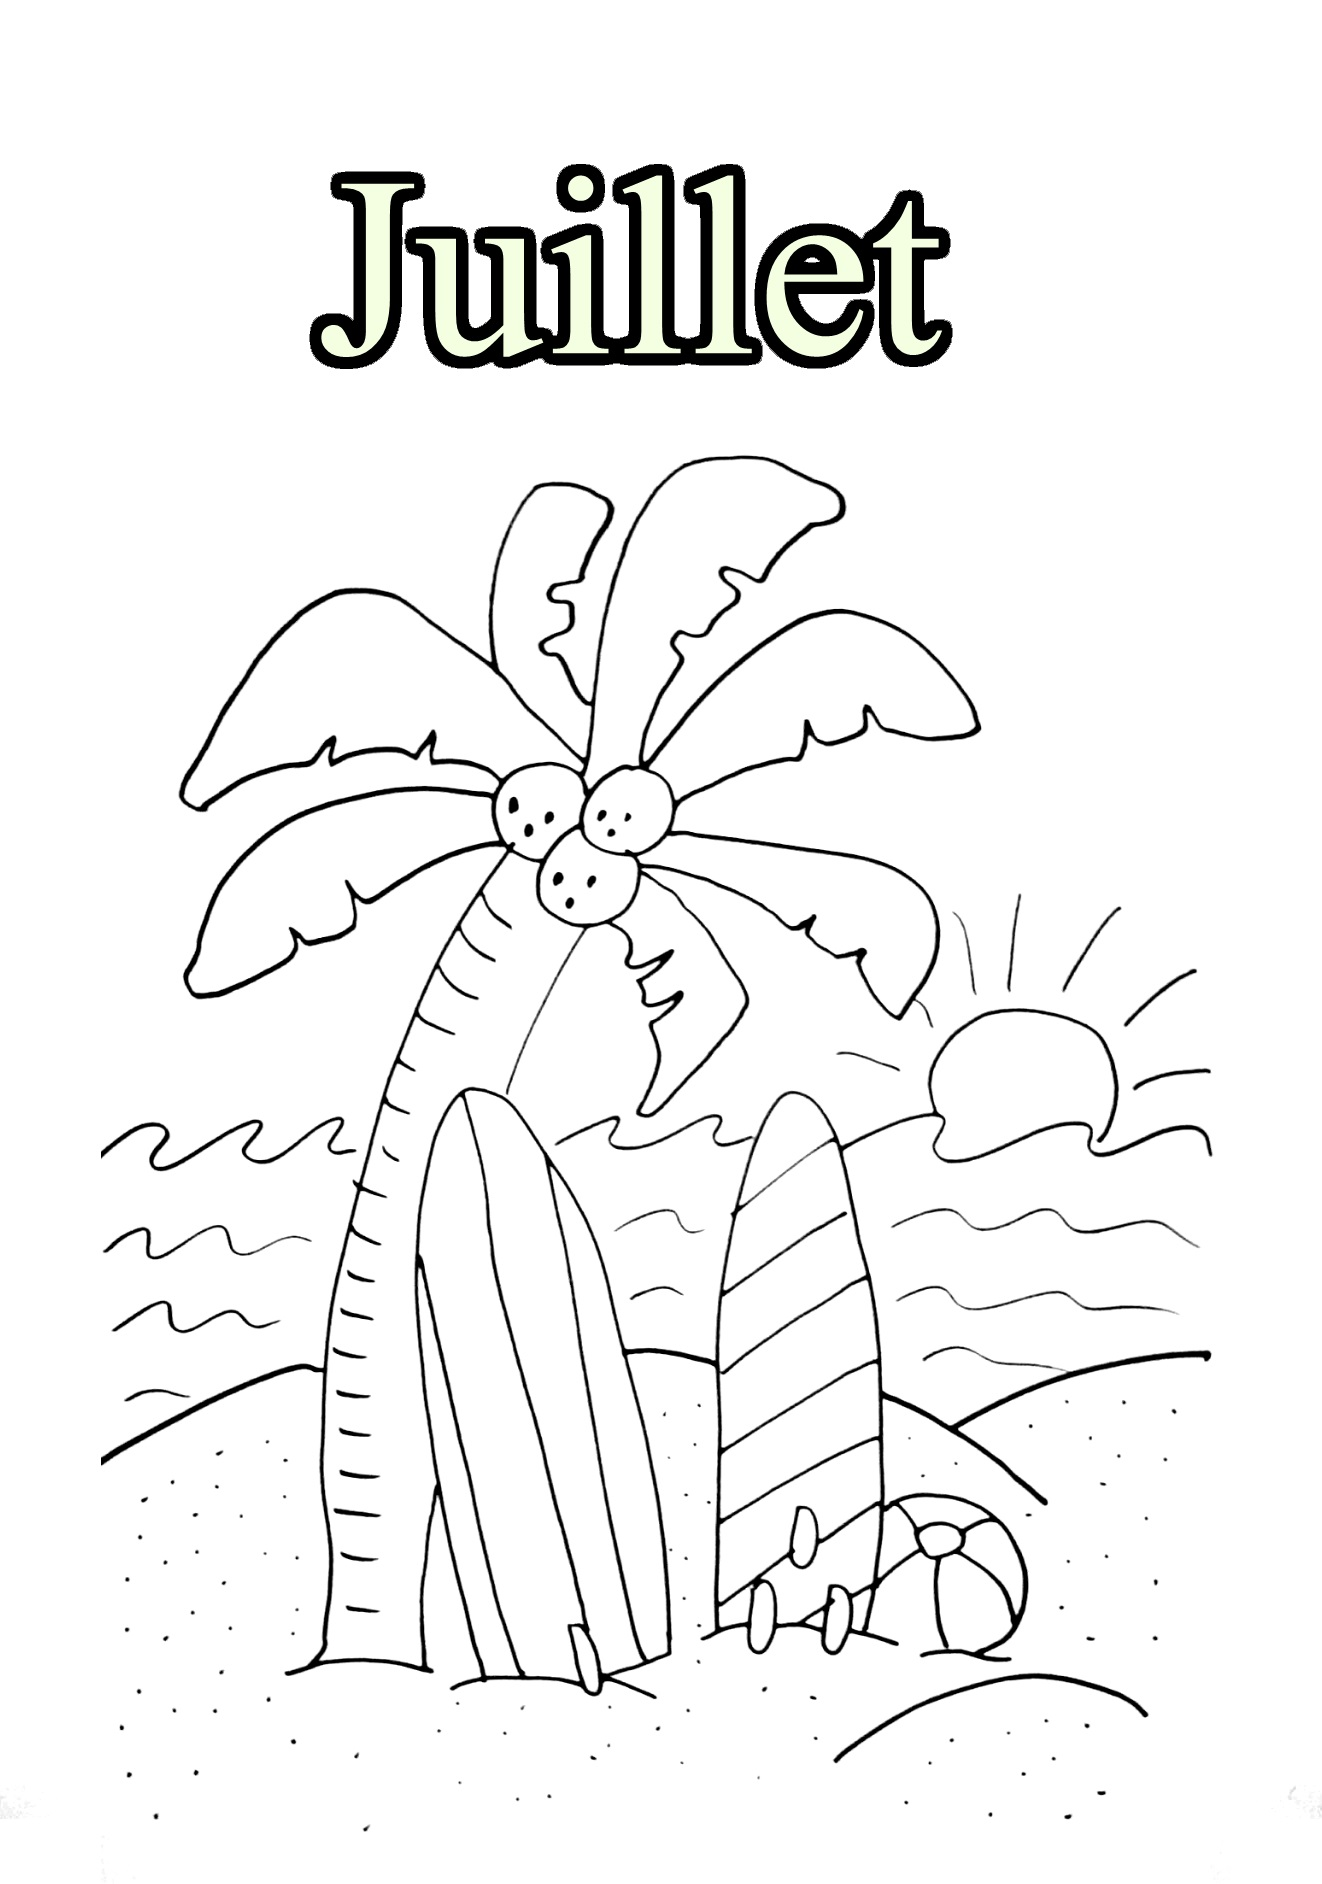 Funny Month coloring page for kids